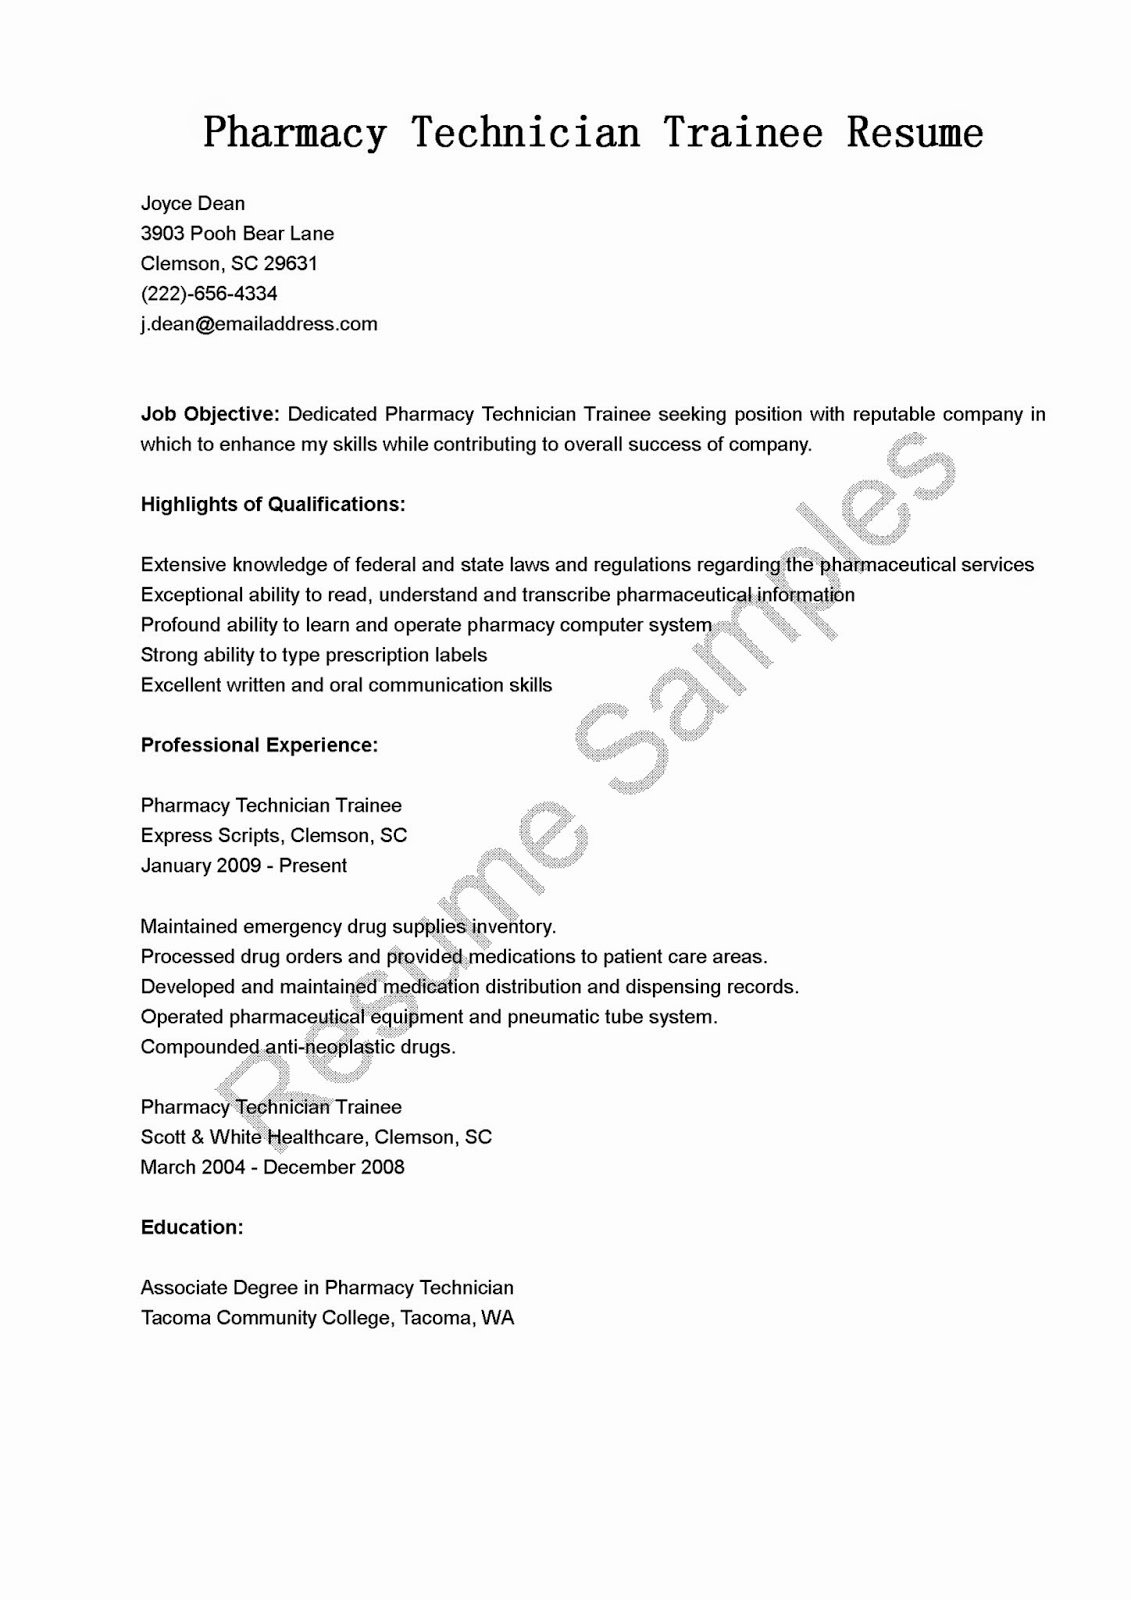 Pharmacy Technician Resume Objective Inspirational Resume Samples Pharmacy Technician Trainee Resume Sample